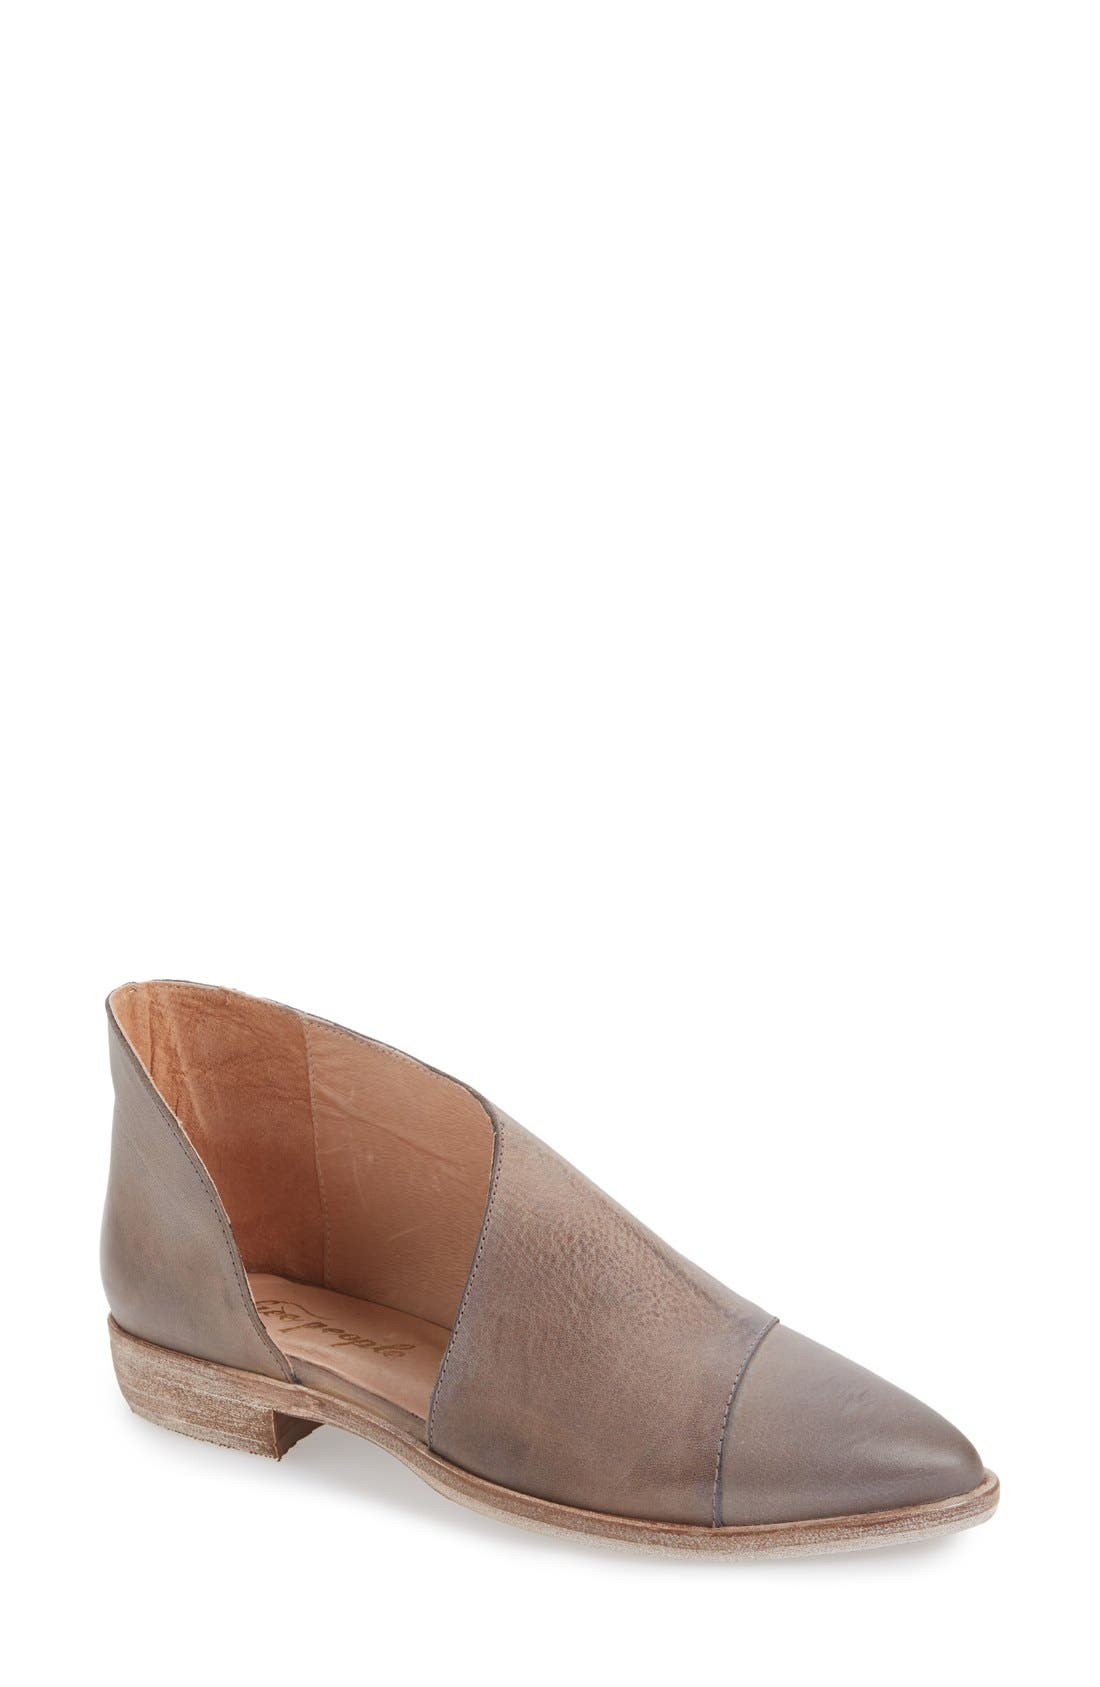 'Royale' Pointy Toe Flat, Main, color, GREY LEATHER